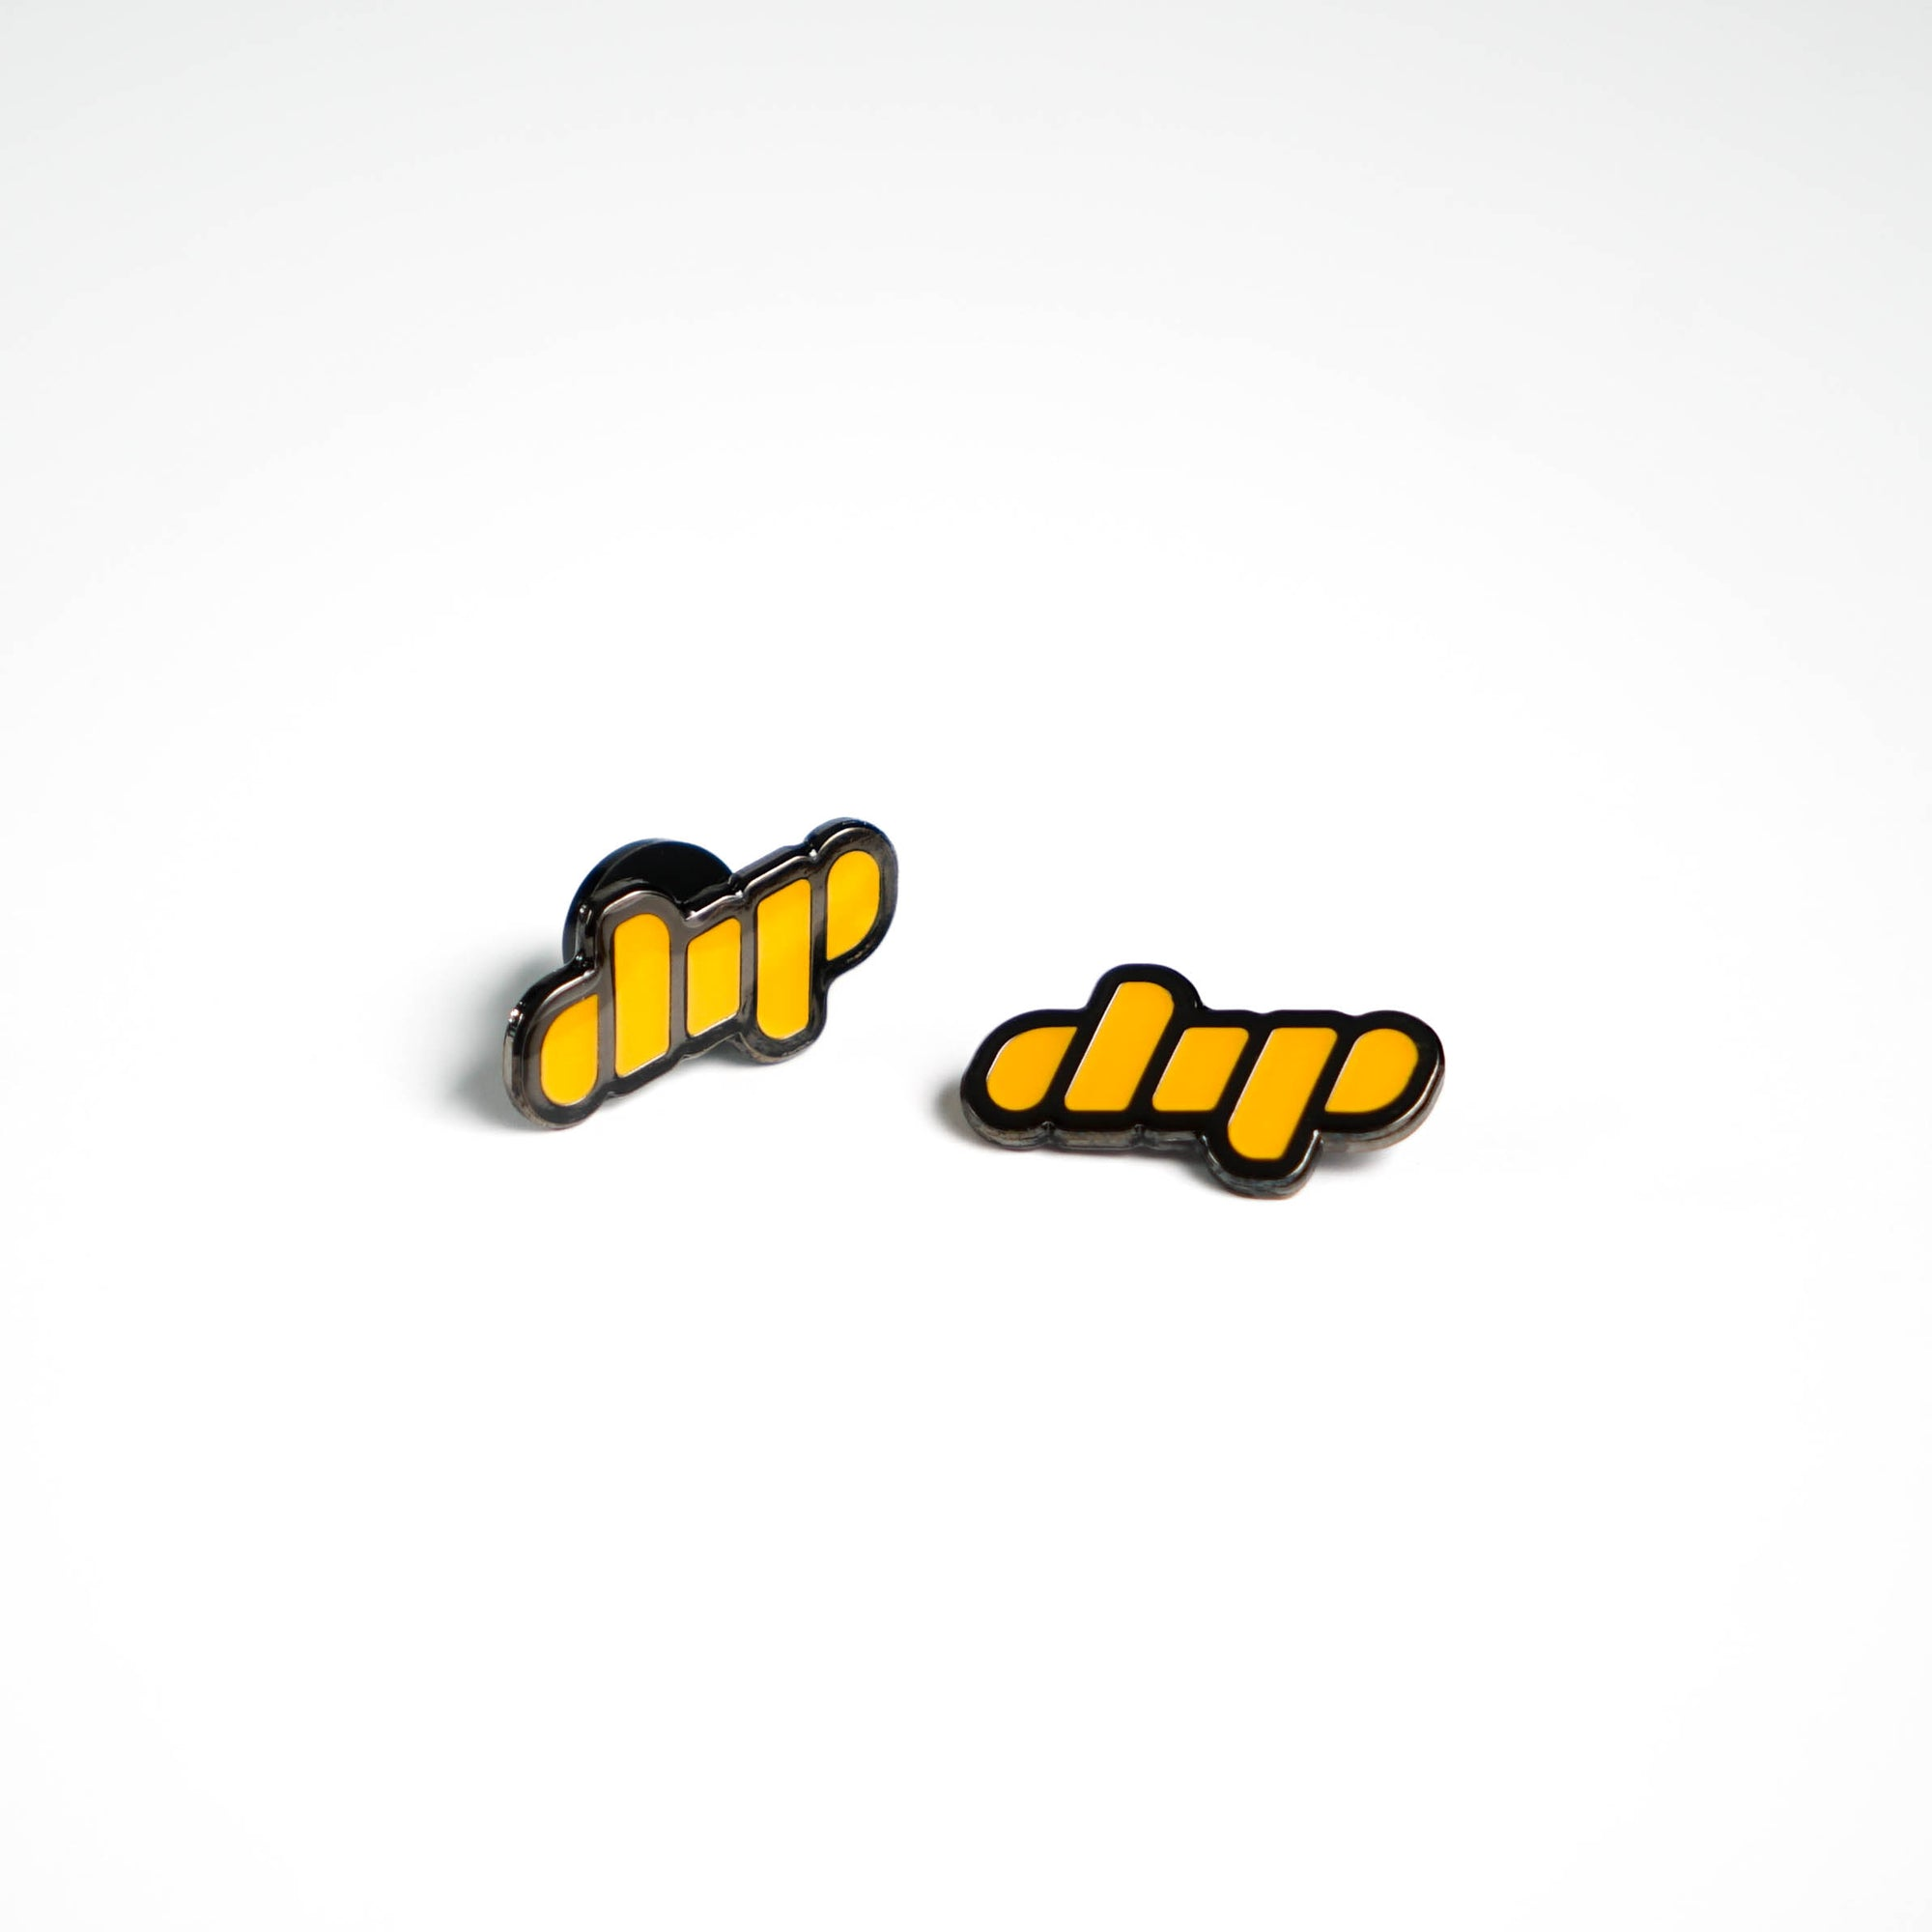 Dip yellow enamel pin